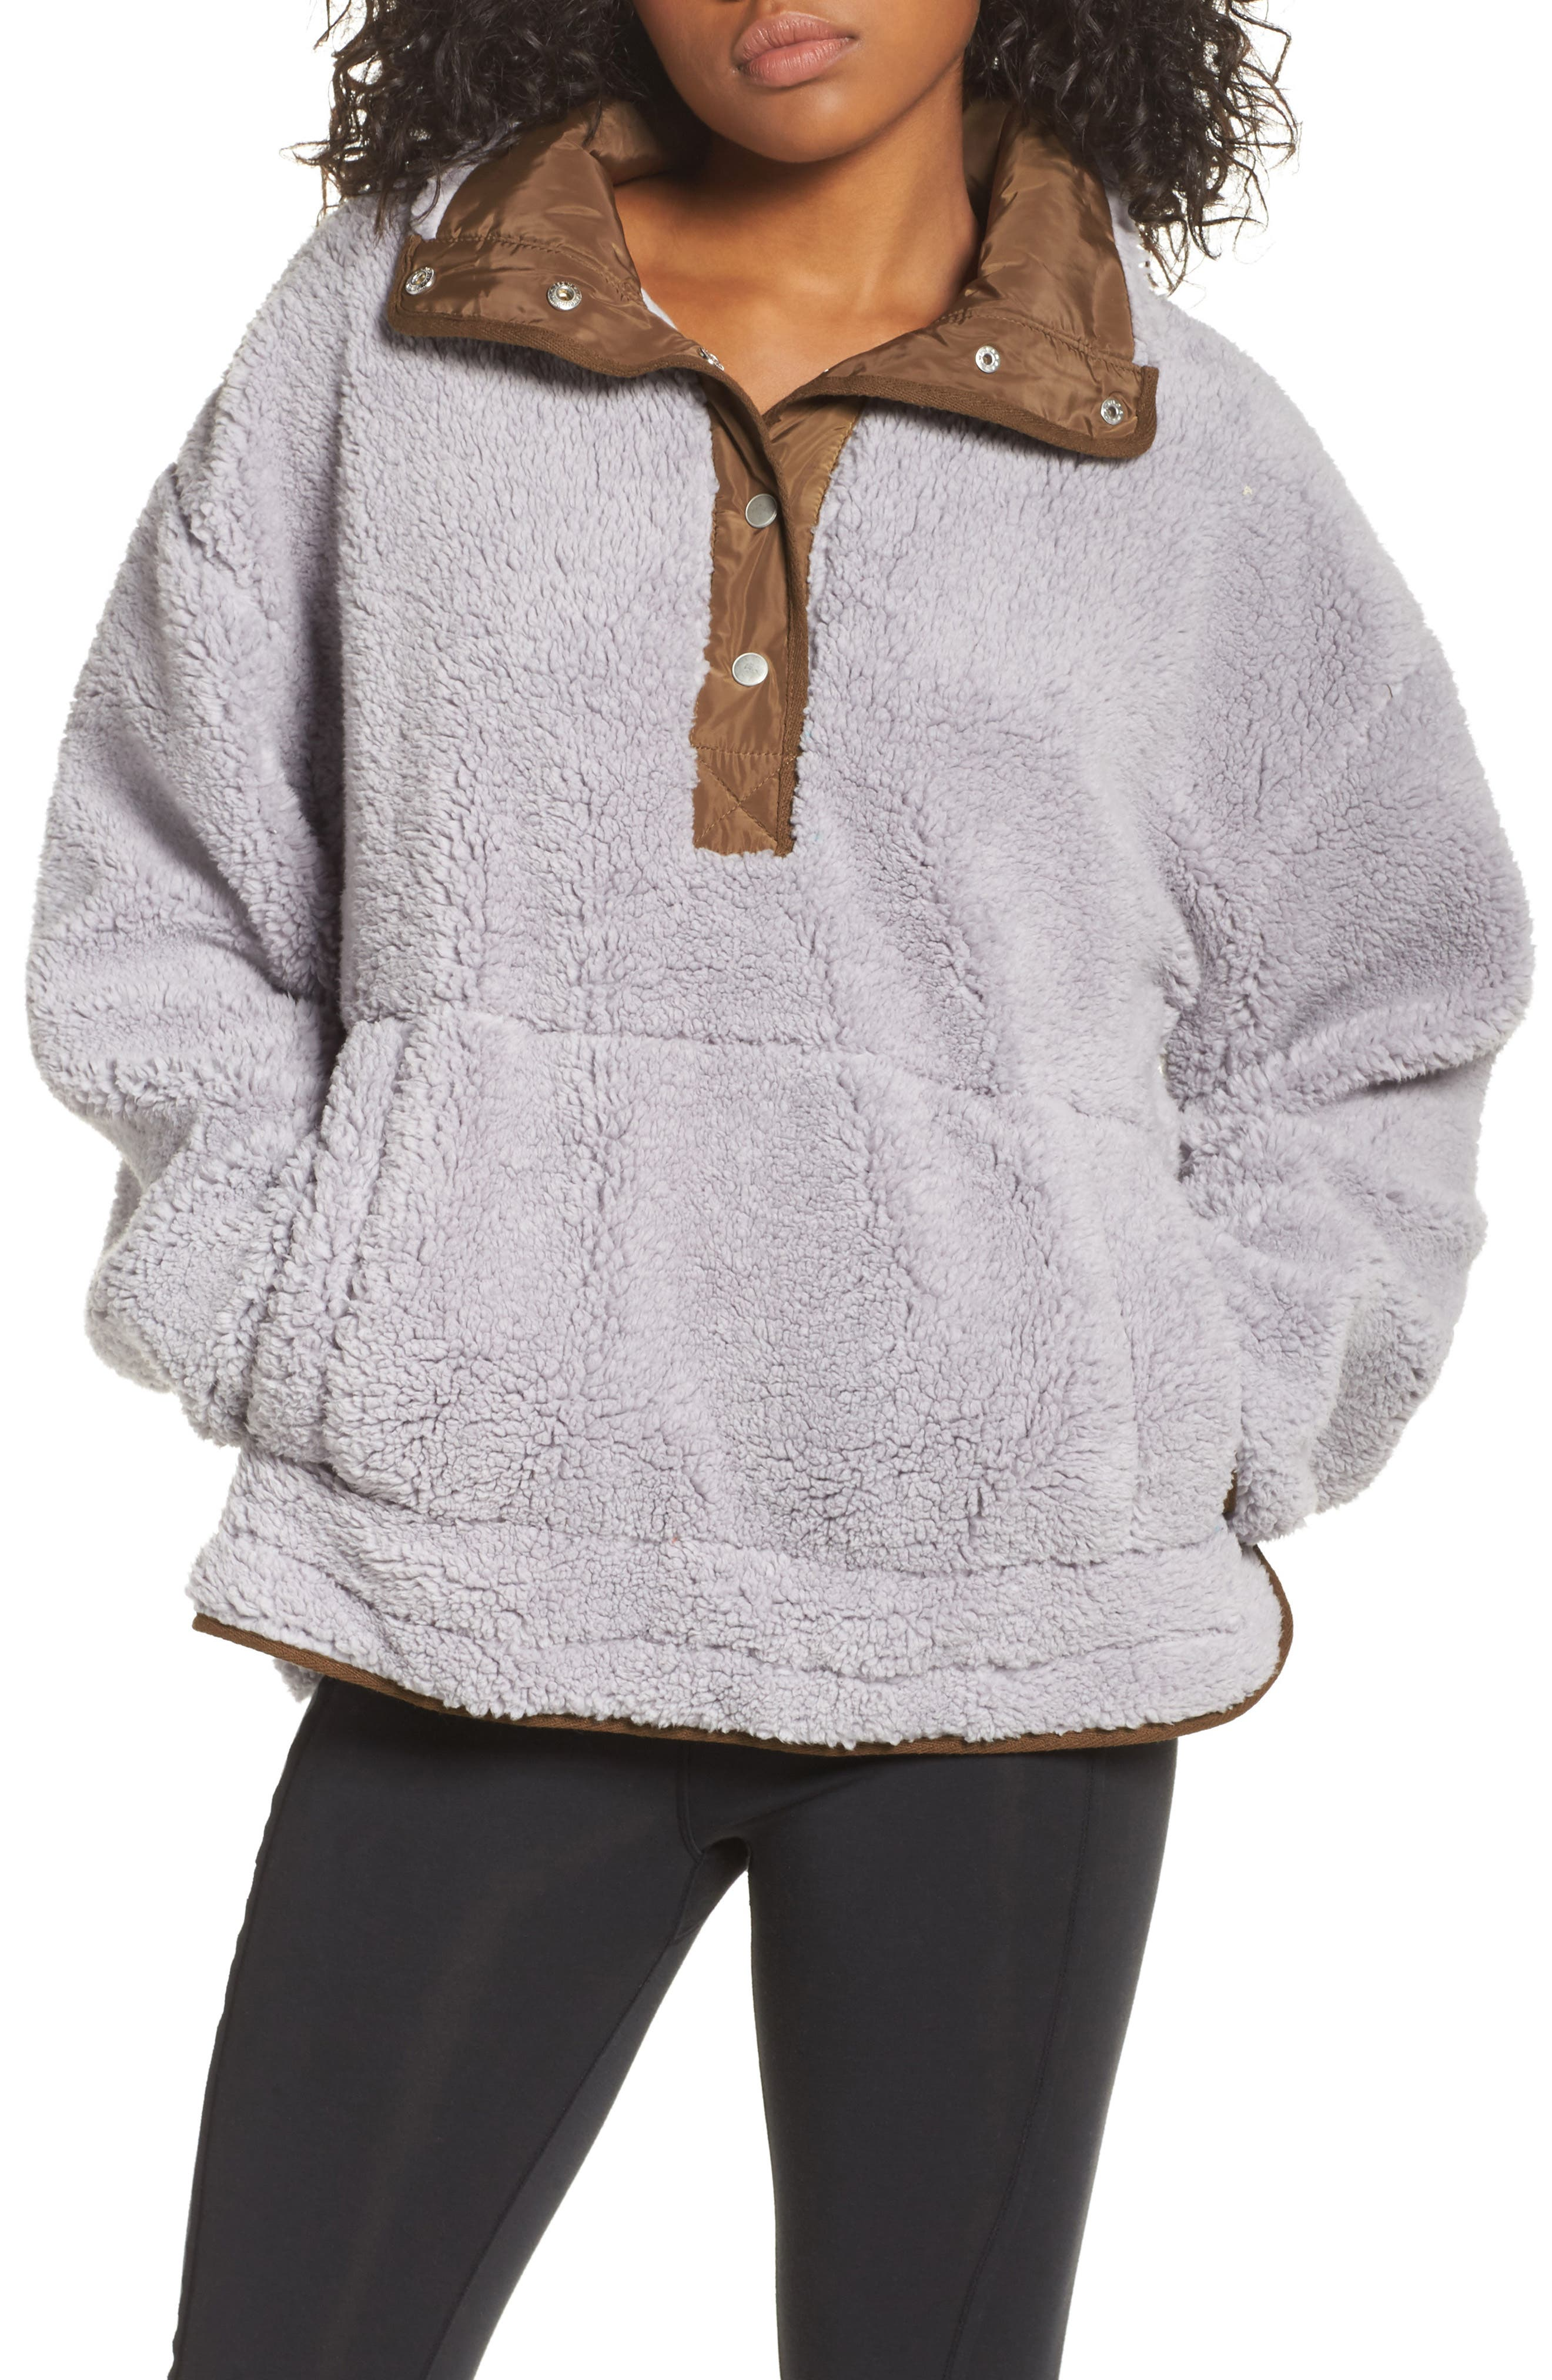 Free People Oh So Cozy Fleece Pullover,                             Main thumbnail 1, color,